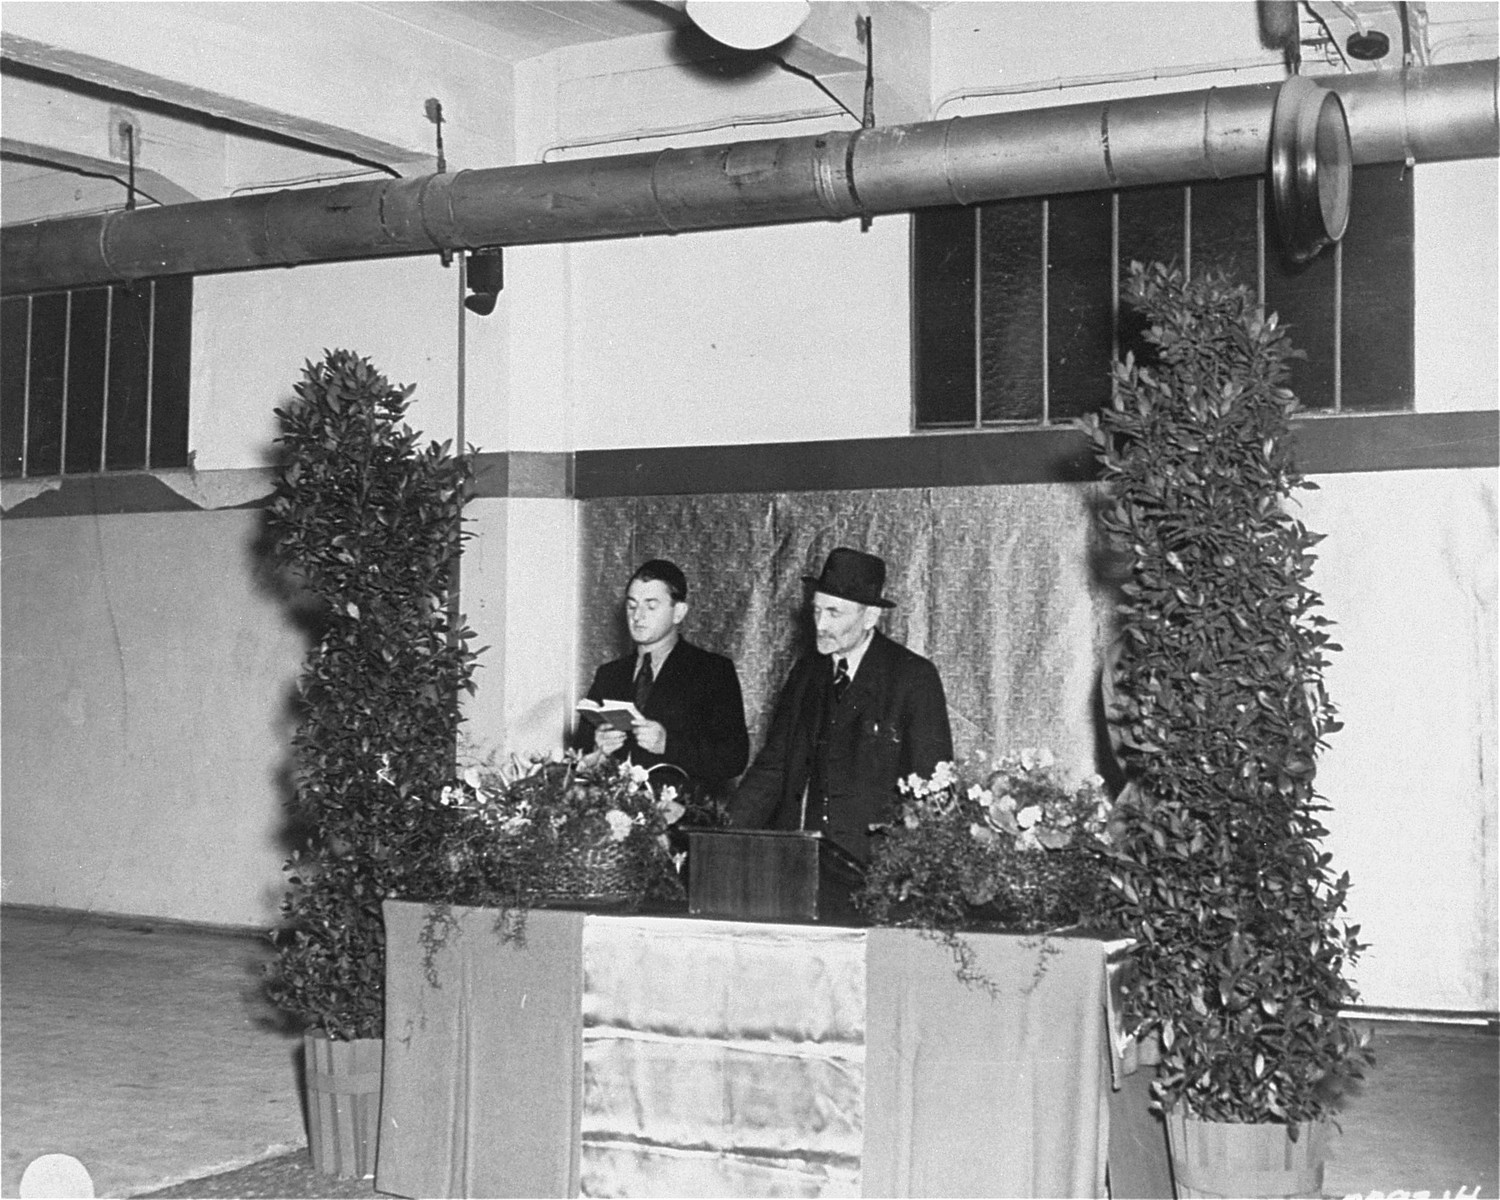 Rabbi Samuel Snieg (right), head of the Central Committee of Liberated Jews, stands at the podium during  opening ceremonies for the first Jewish bakery in Berlin since the end of the Nazi period.